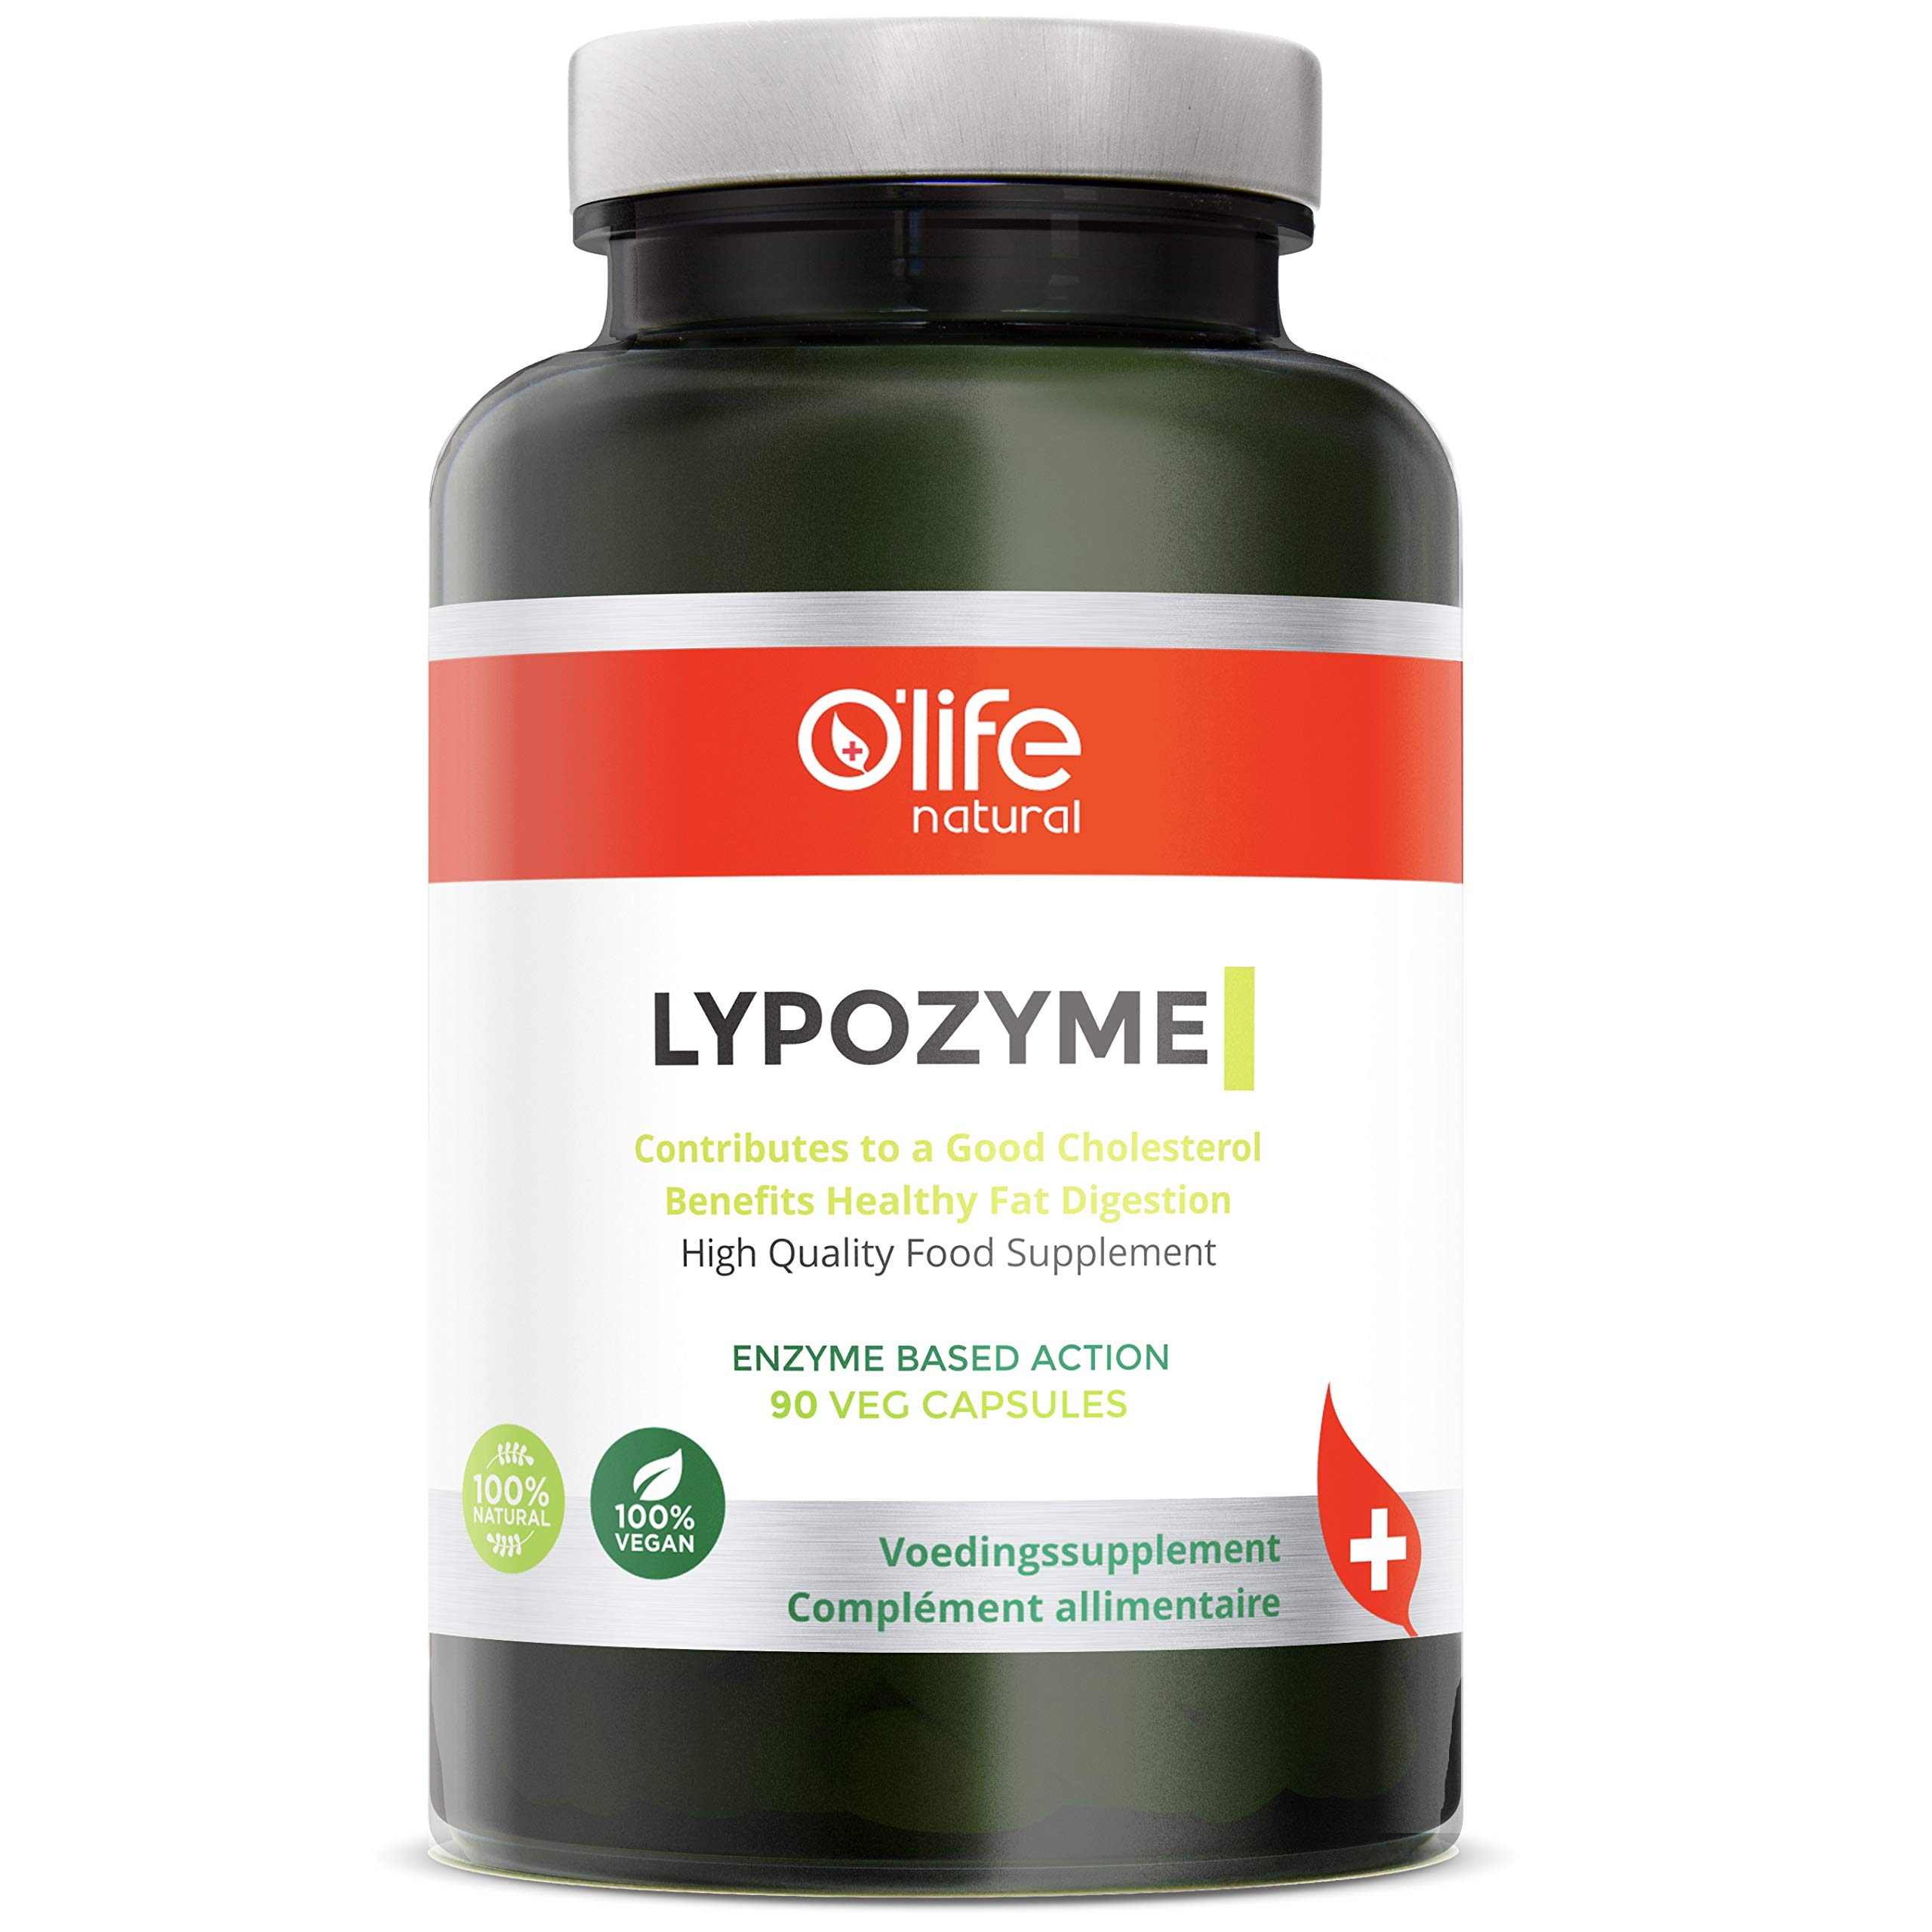 O'Life Natural's LYPOZYME - Advanced Lipase Enzyme Formula - Daily Cholesterol Lowering Support Supplement - Promote Carbs & Fats Digestion - 90 Veg Capsules